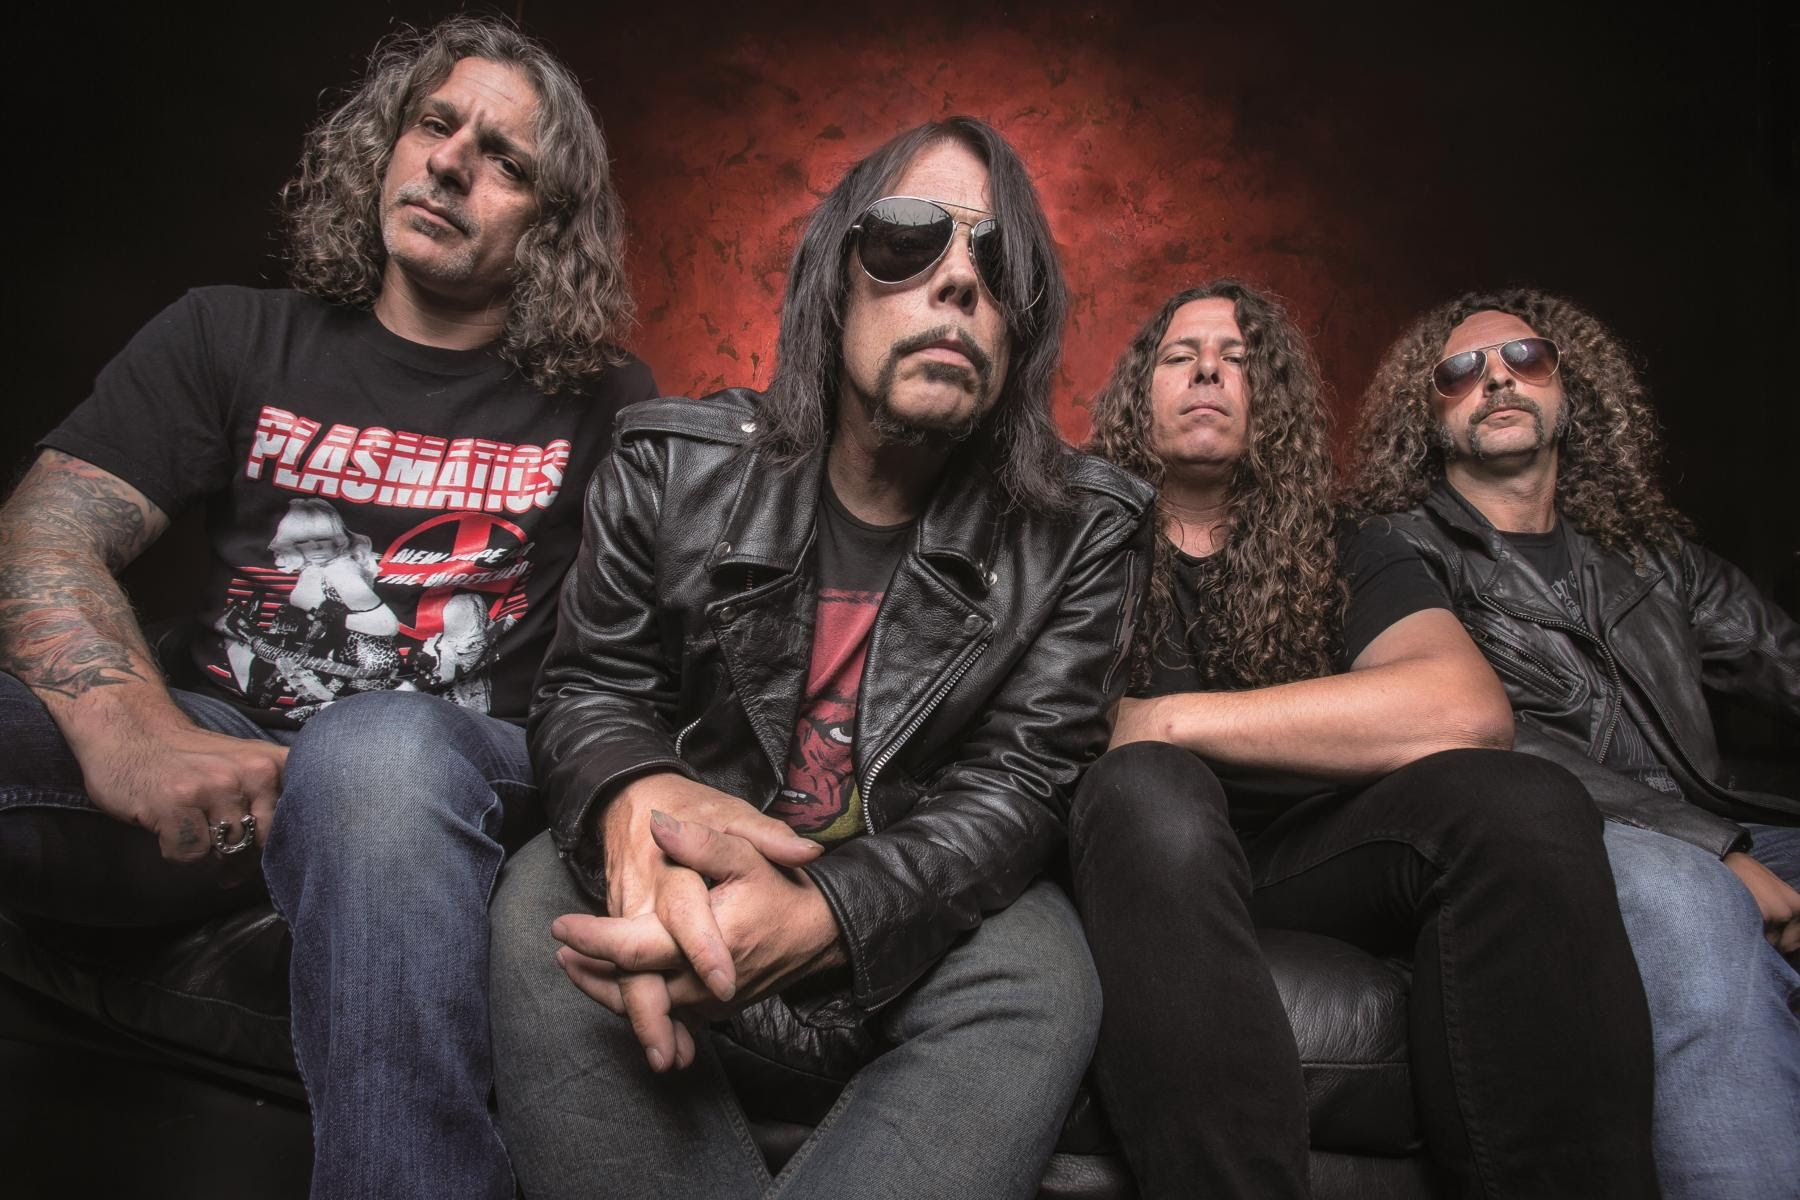 """MONSTER MAGNET Premiere New Song and Lyric Video """"Watch Me Fade""""  https://soundcloud.com/napalmrecords/monster-magnet-mastermind-69/s-vydPK  #monstermagnetnj #napalmrecords"""